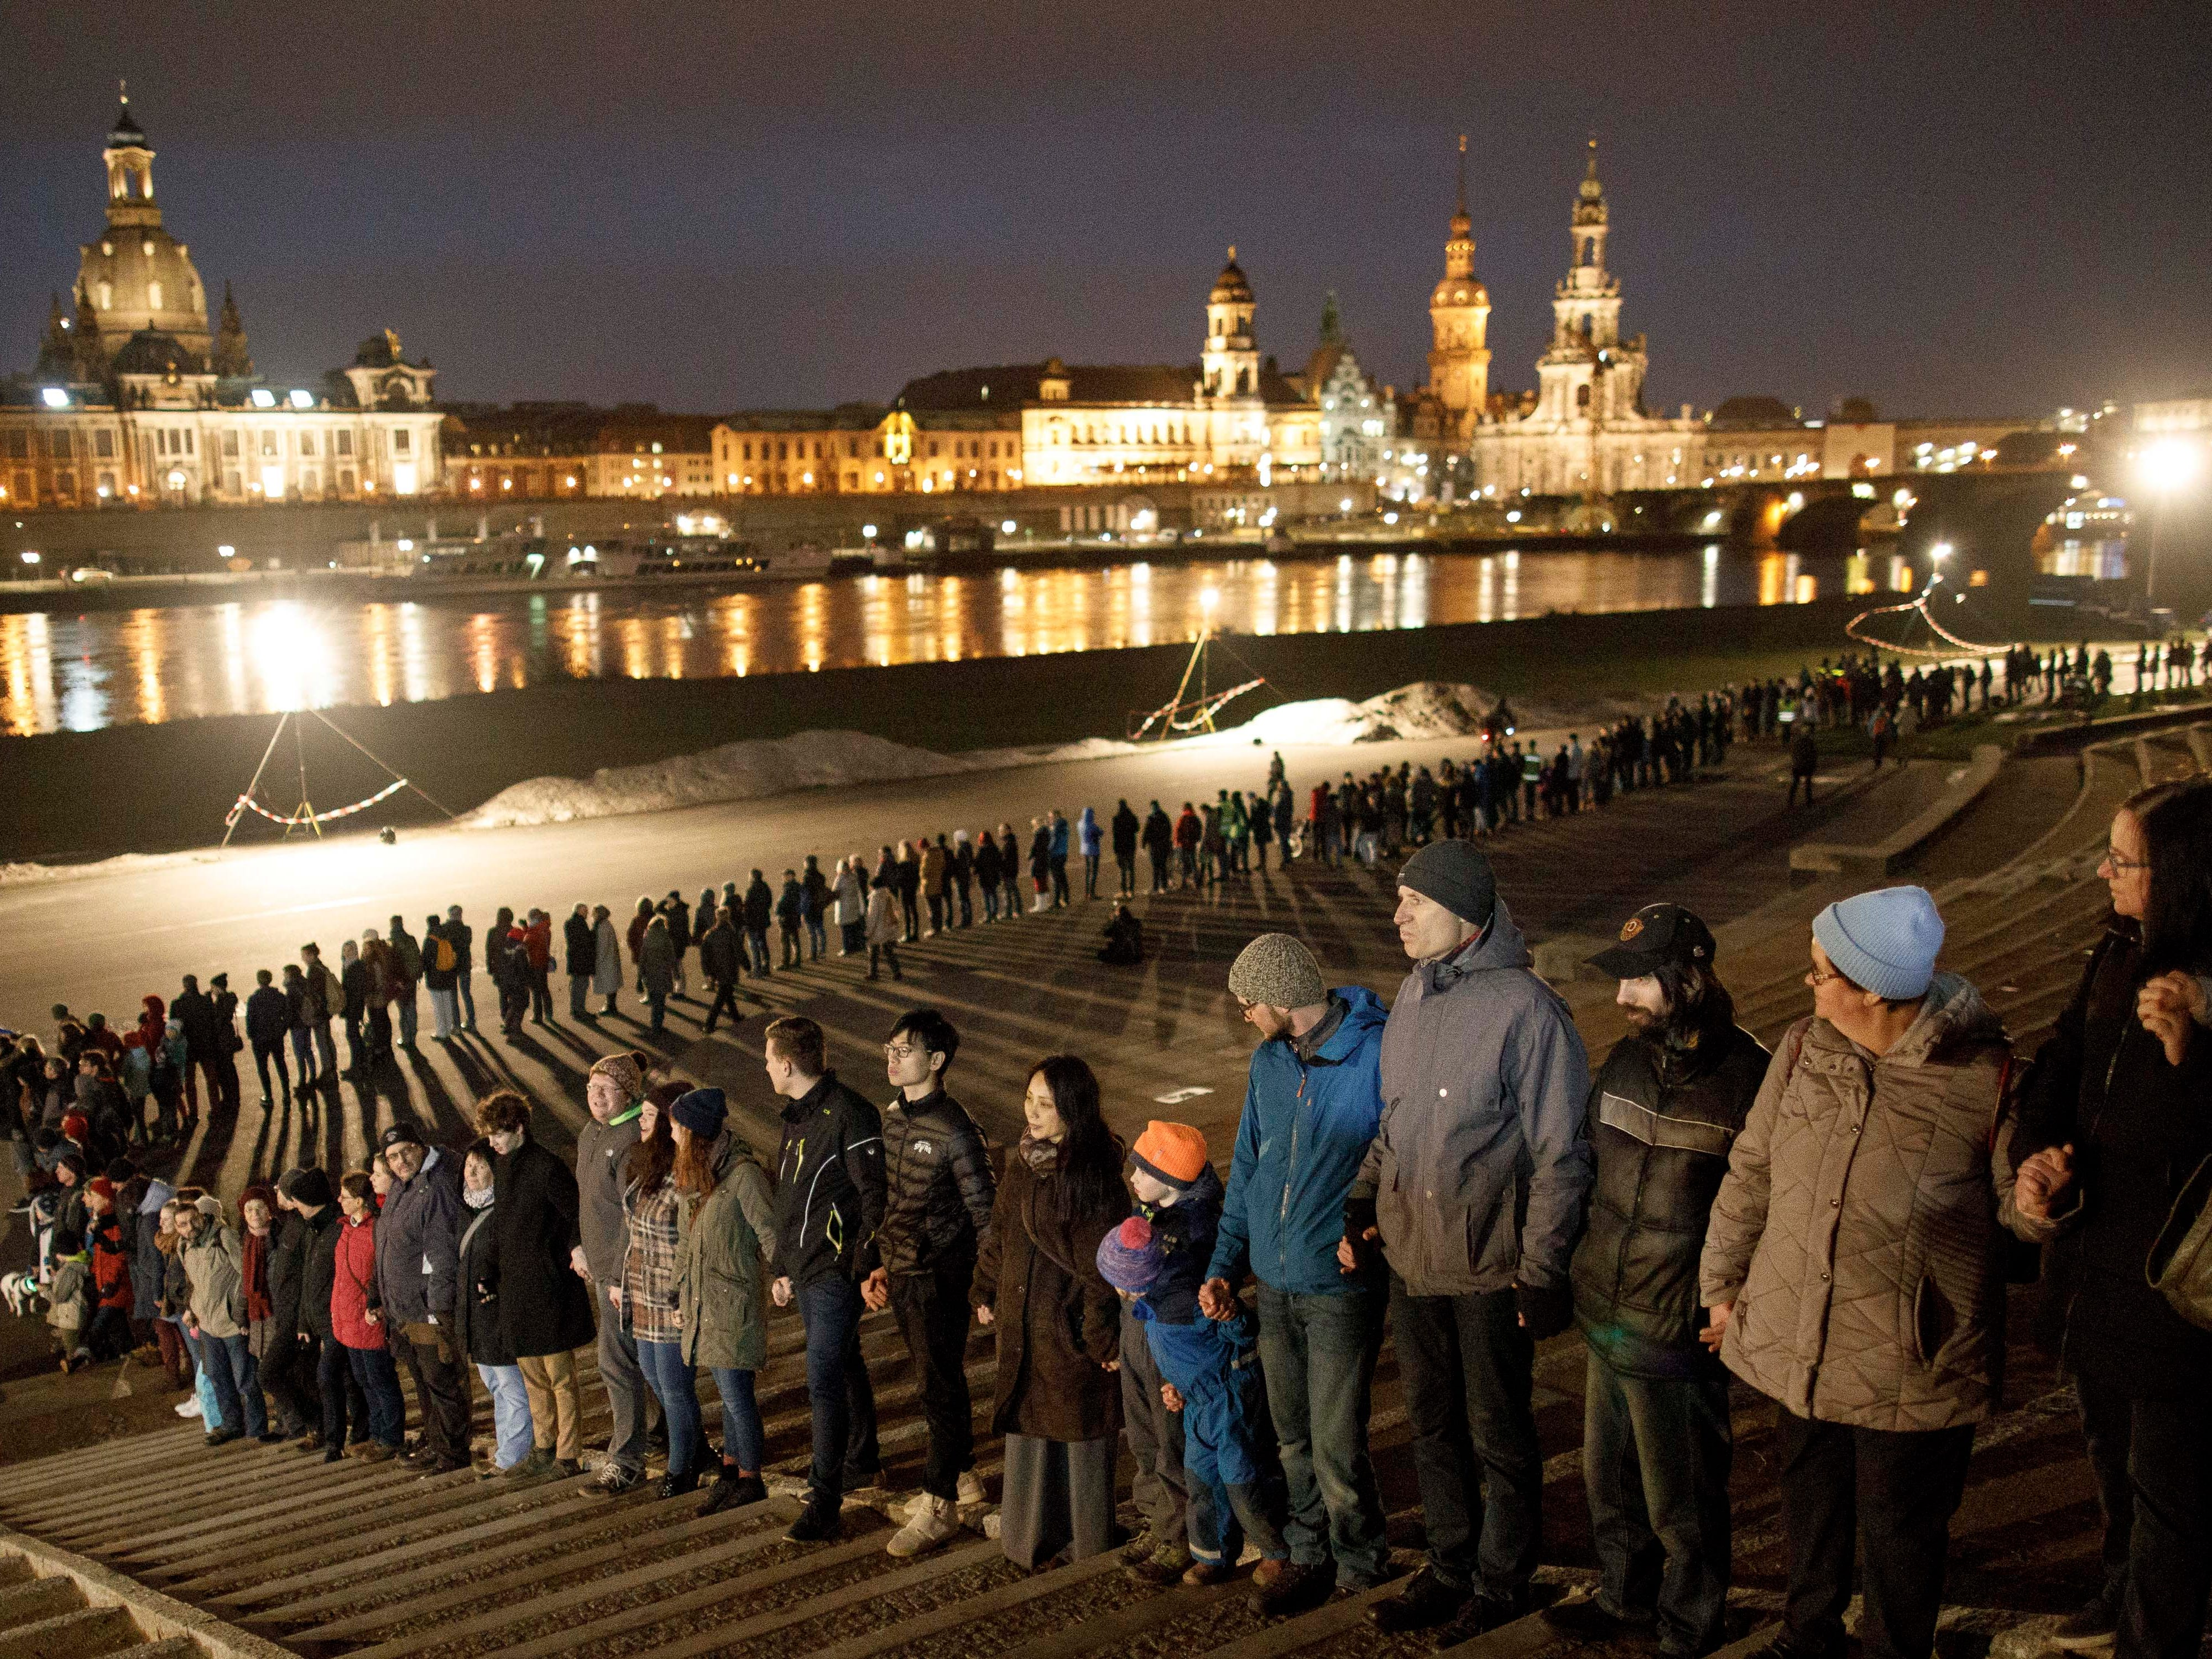 People hold hands in a human chain to commemorate the 74th anniversary of the firebombing of the city during World War II on Feb. 13, 2019 in Dresden, Germany. From Feb. 13-15, 1945, U.S. and British bombers firebombed the city center, killing an estimated 25,000 people.